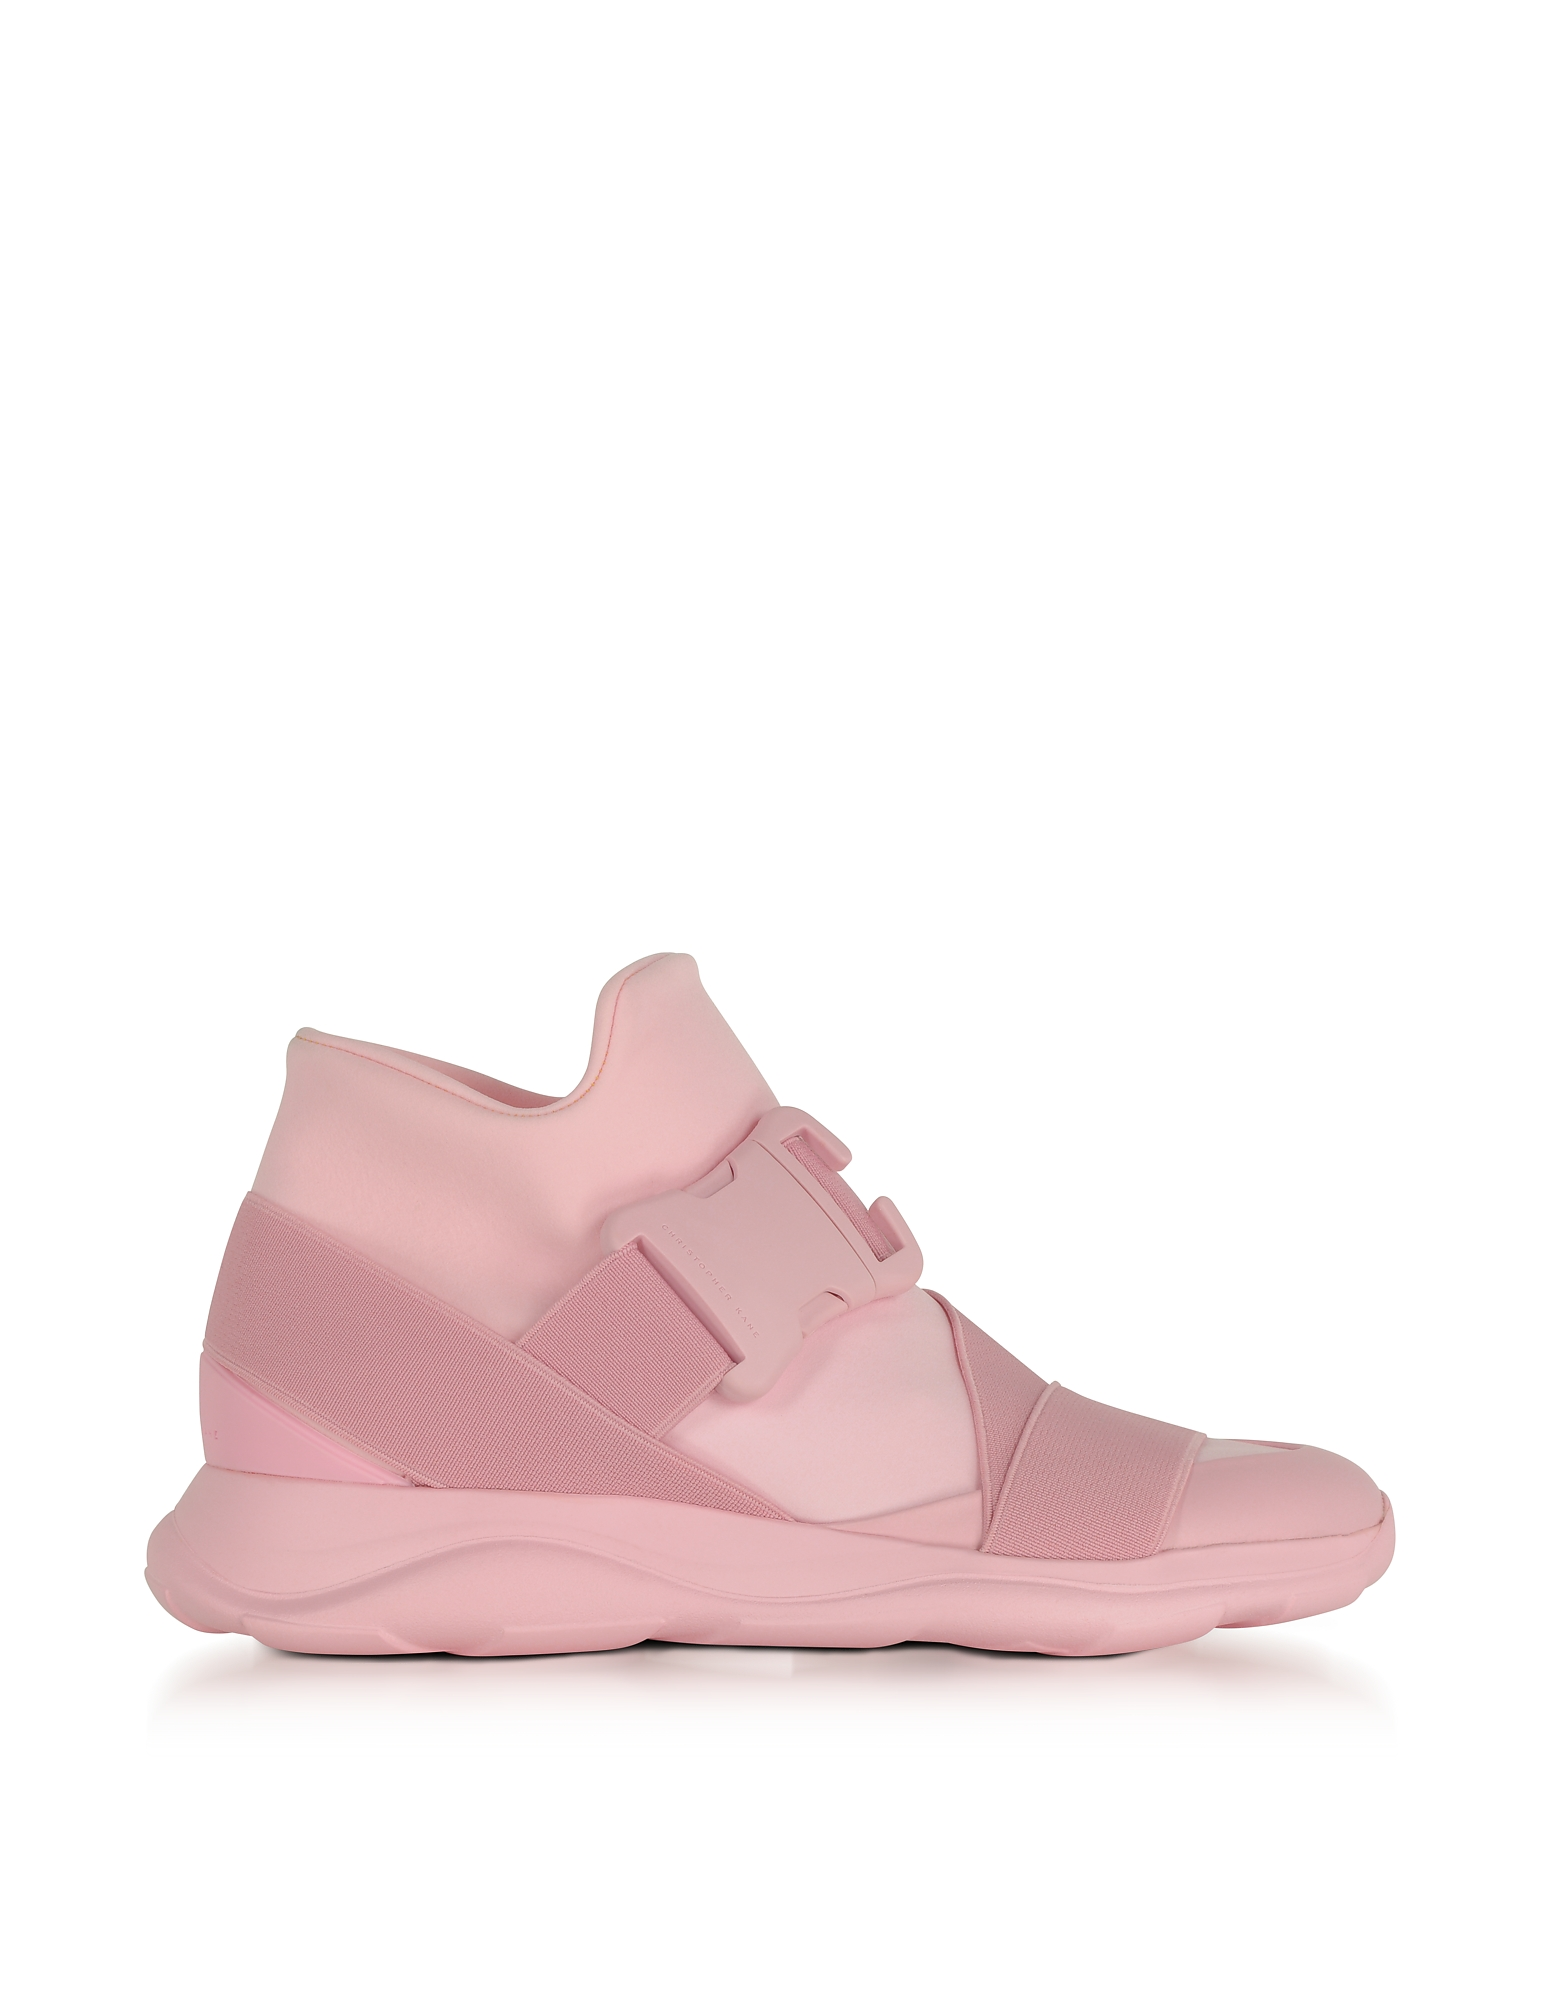 Christopher Kane Shoes, Pink Neoprene High Top Women's Sneakers